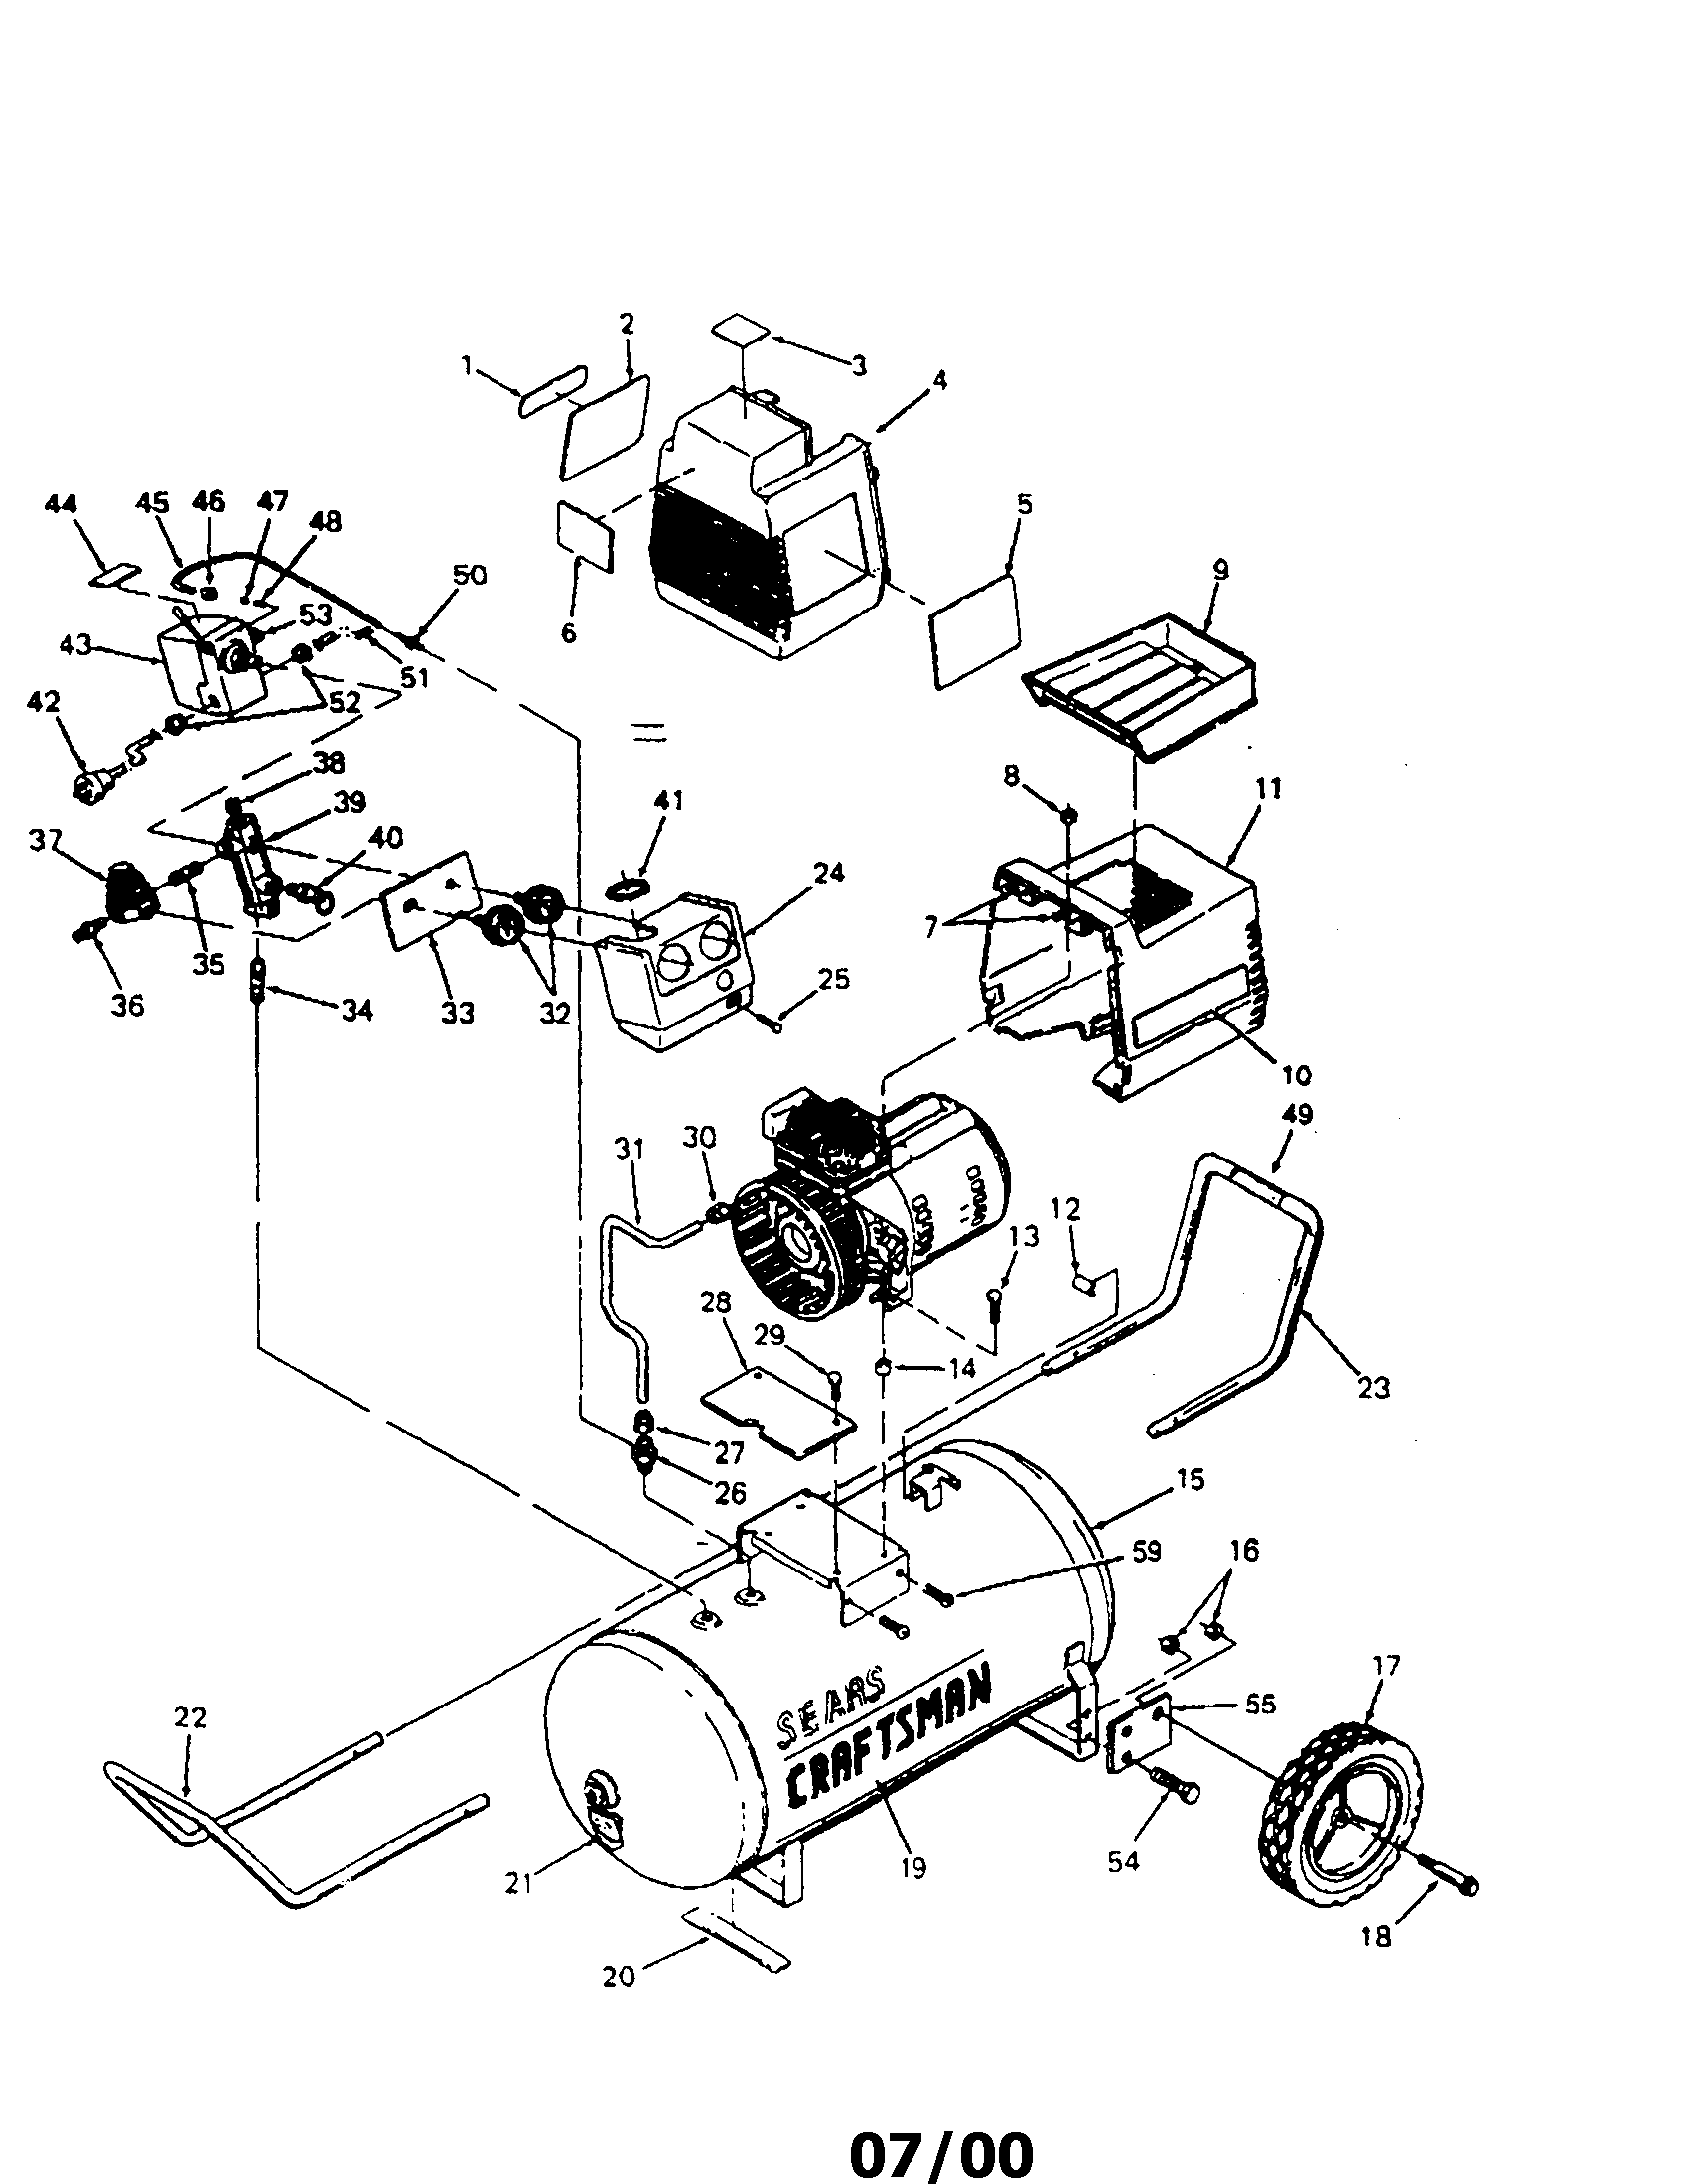 919.153231_craftsman_compressor_parts 919 153231 sears craftsman air compressor parts abac air compressor wiring diagram at reclaimingppi.co